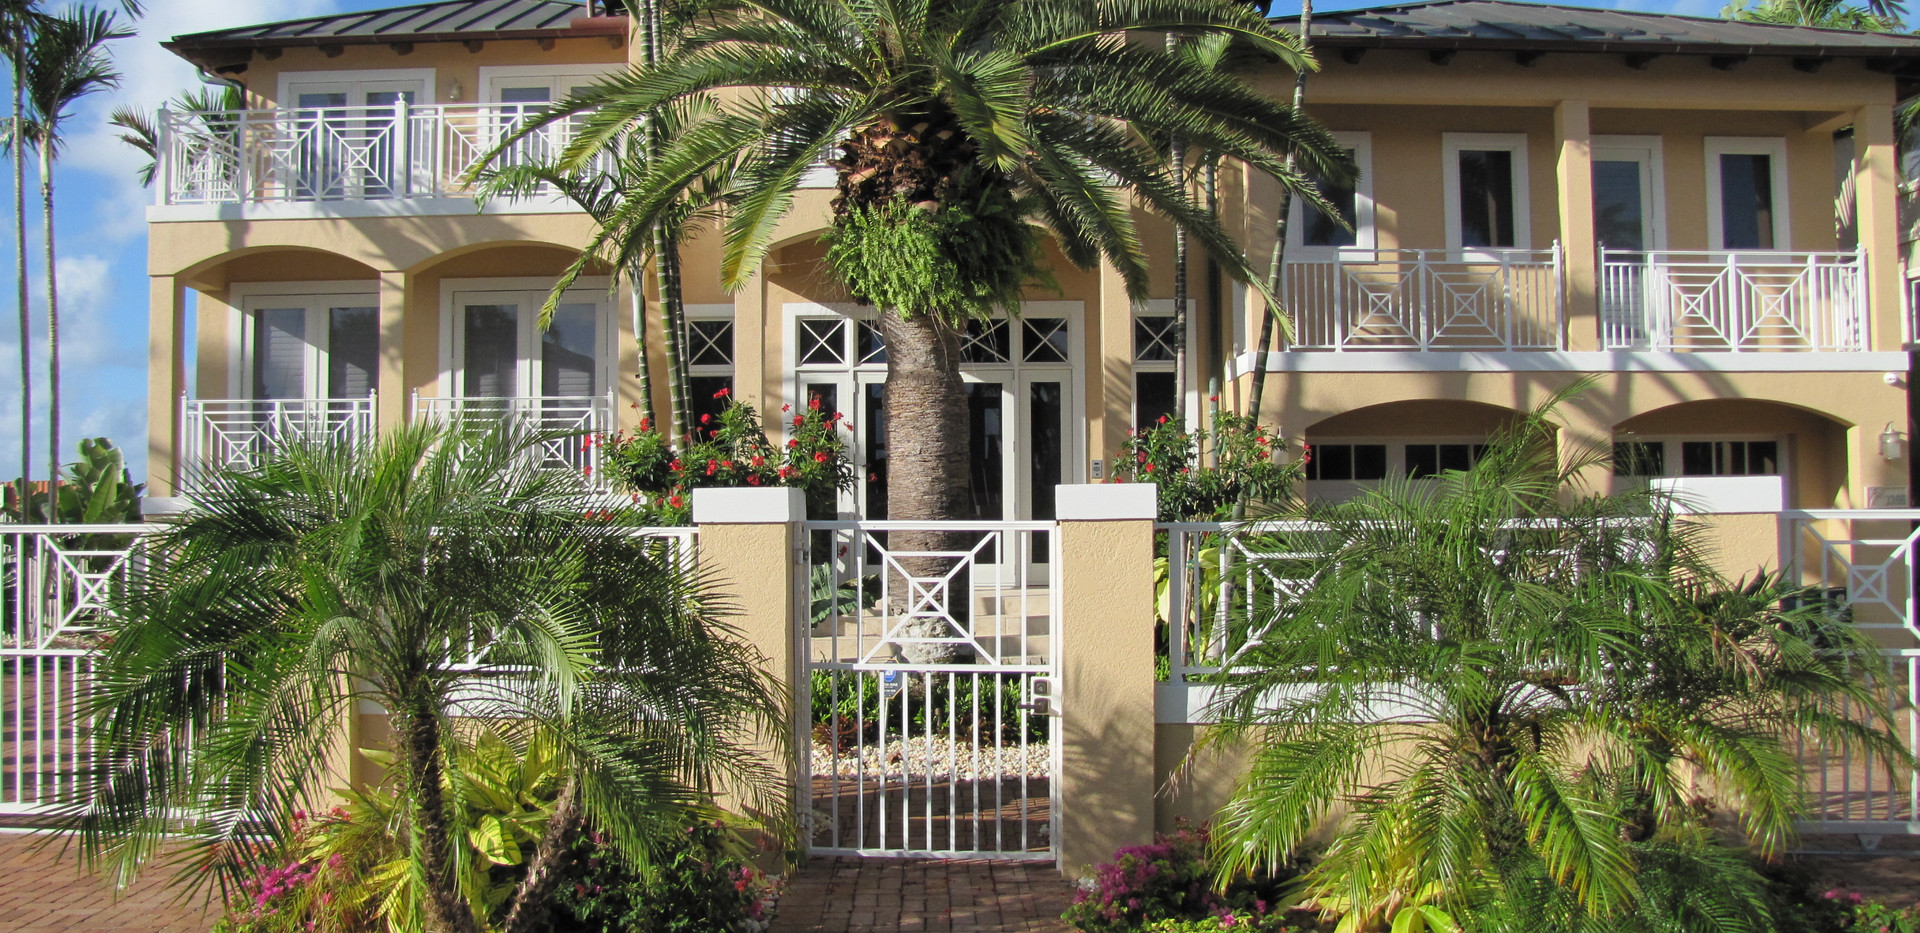 After Landscaping Front of House -